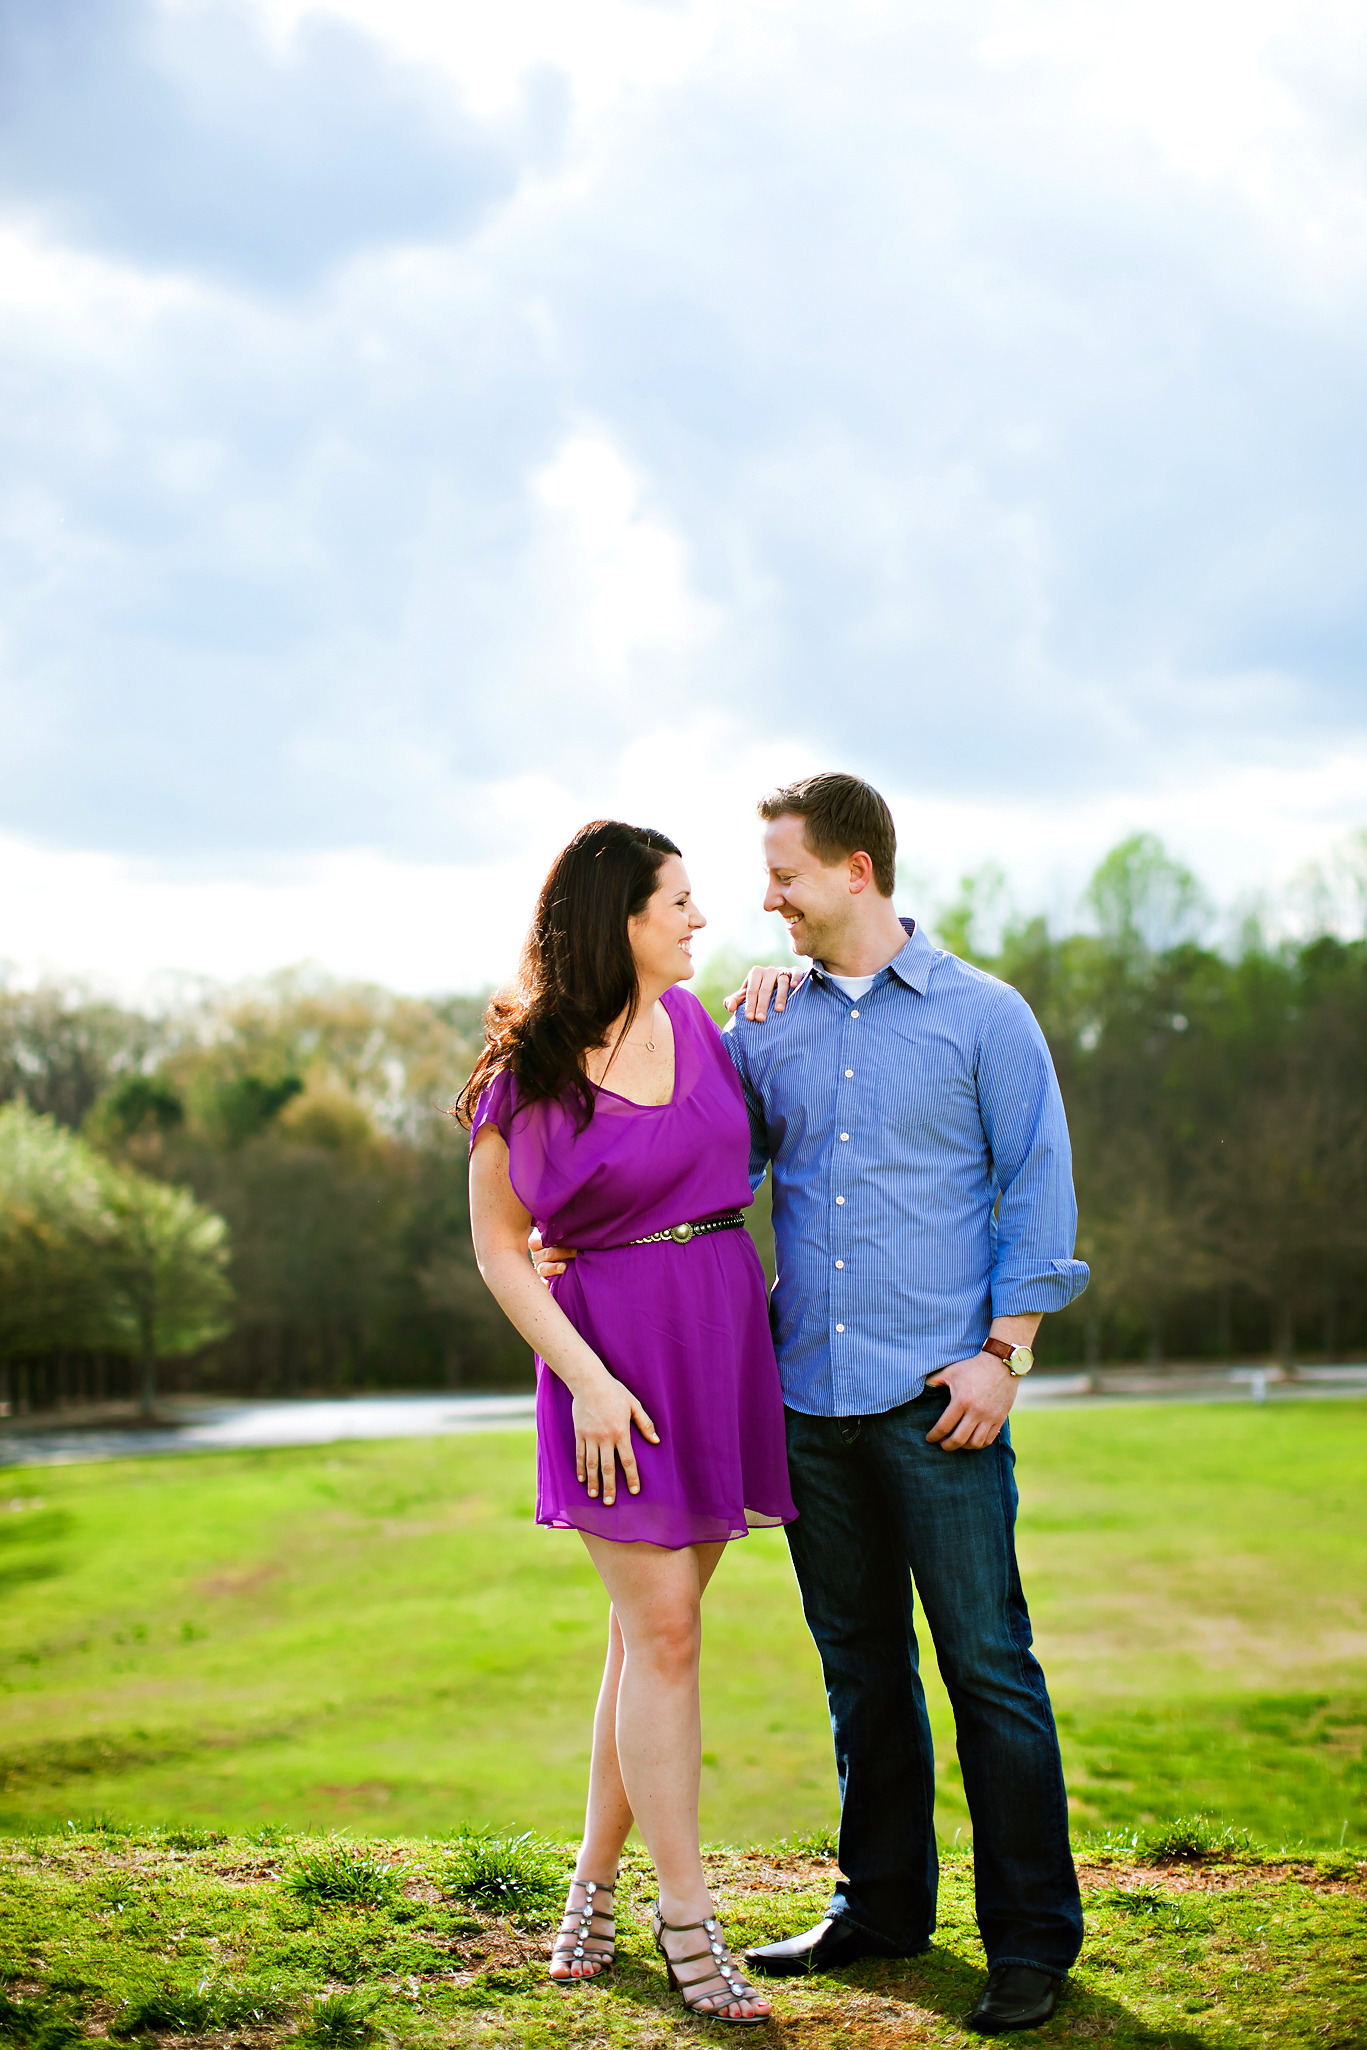 fun_and_natural_engagement_photography.jpg